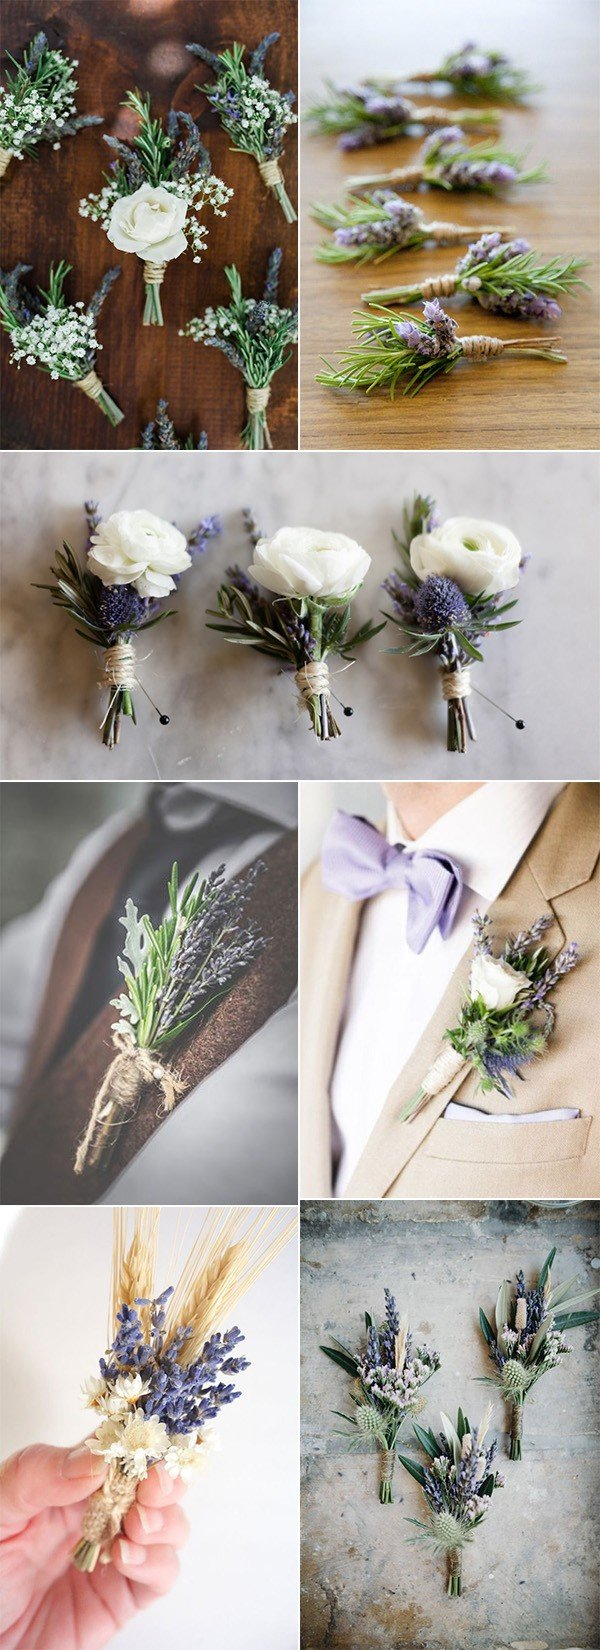 Lavender themed wedding boutonniere ideas